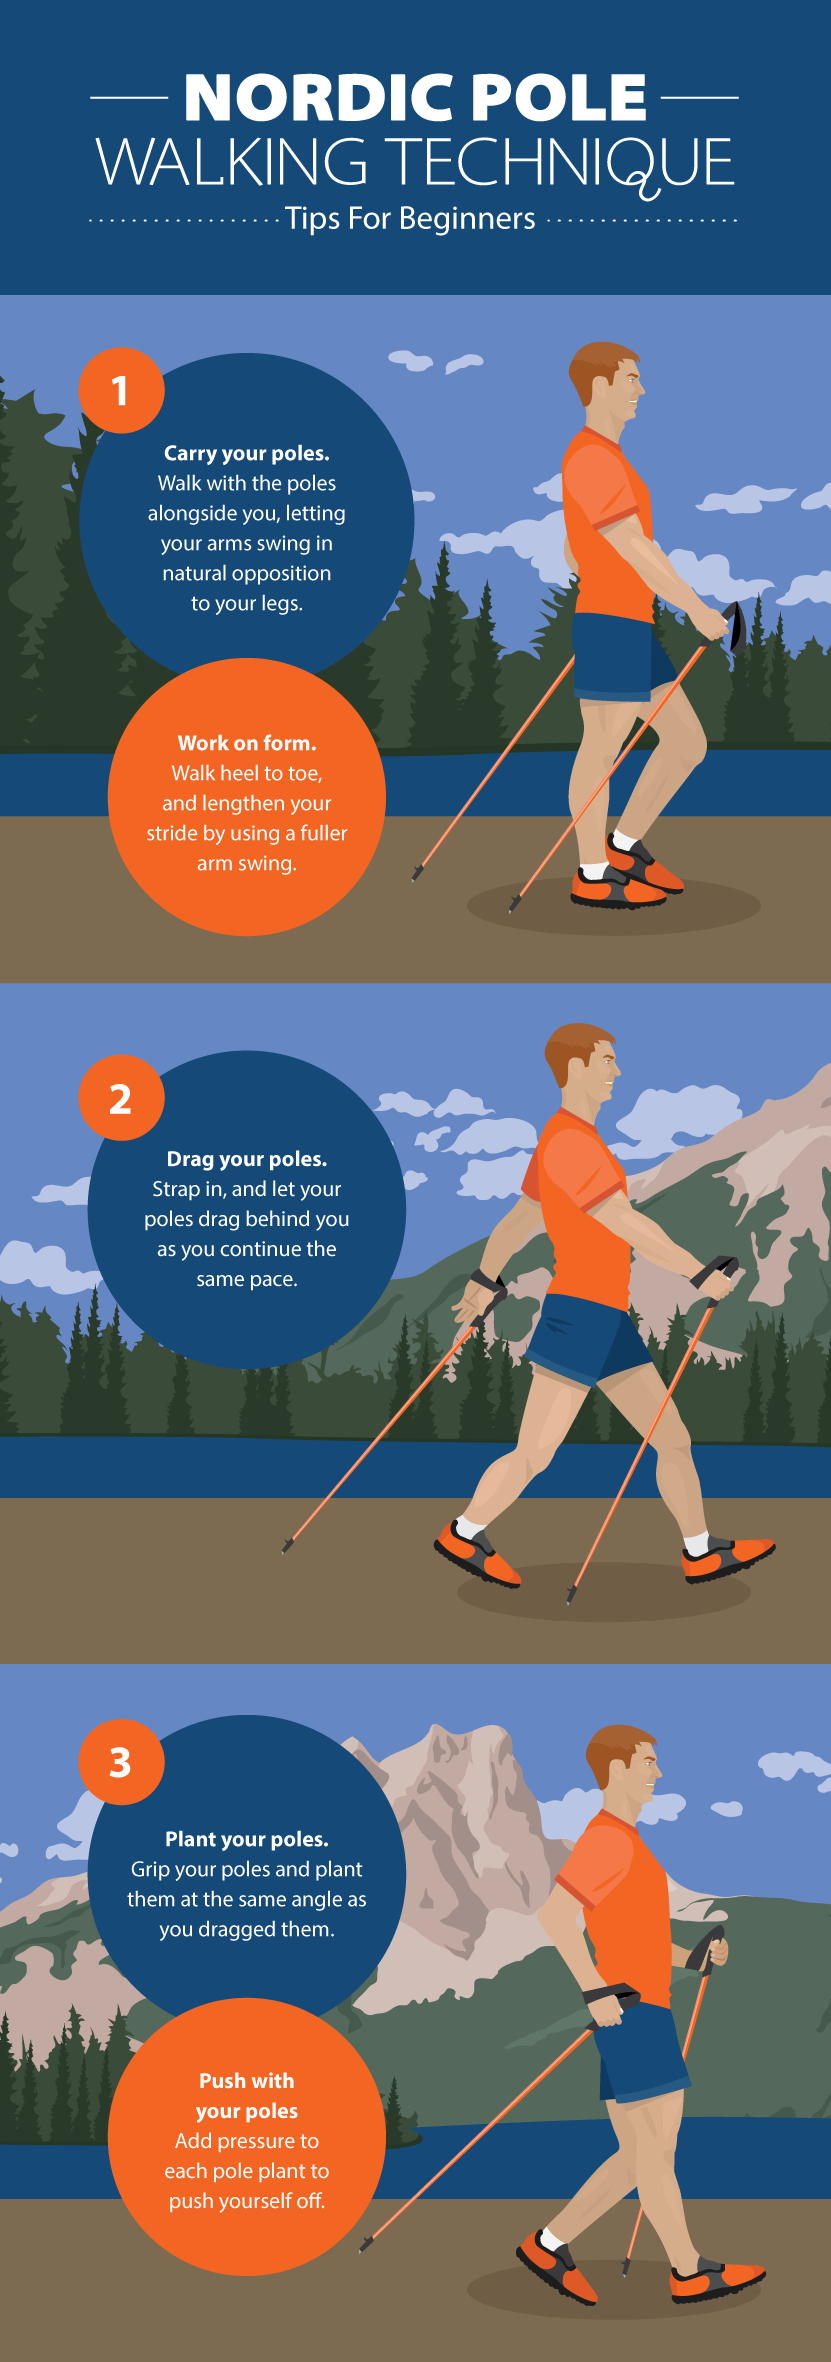 nordic pole walking techniques ()